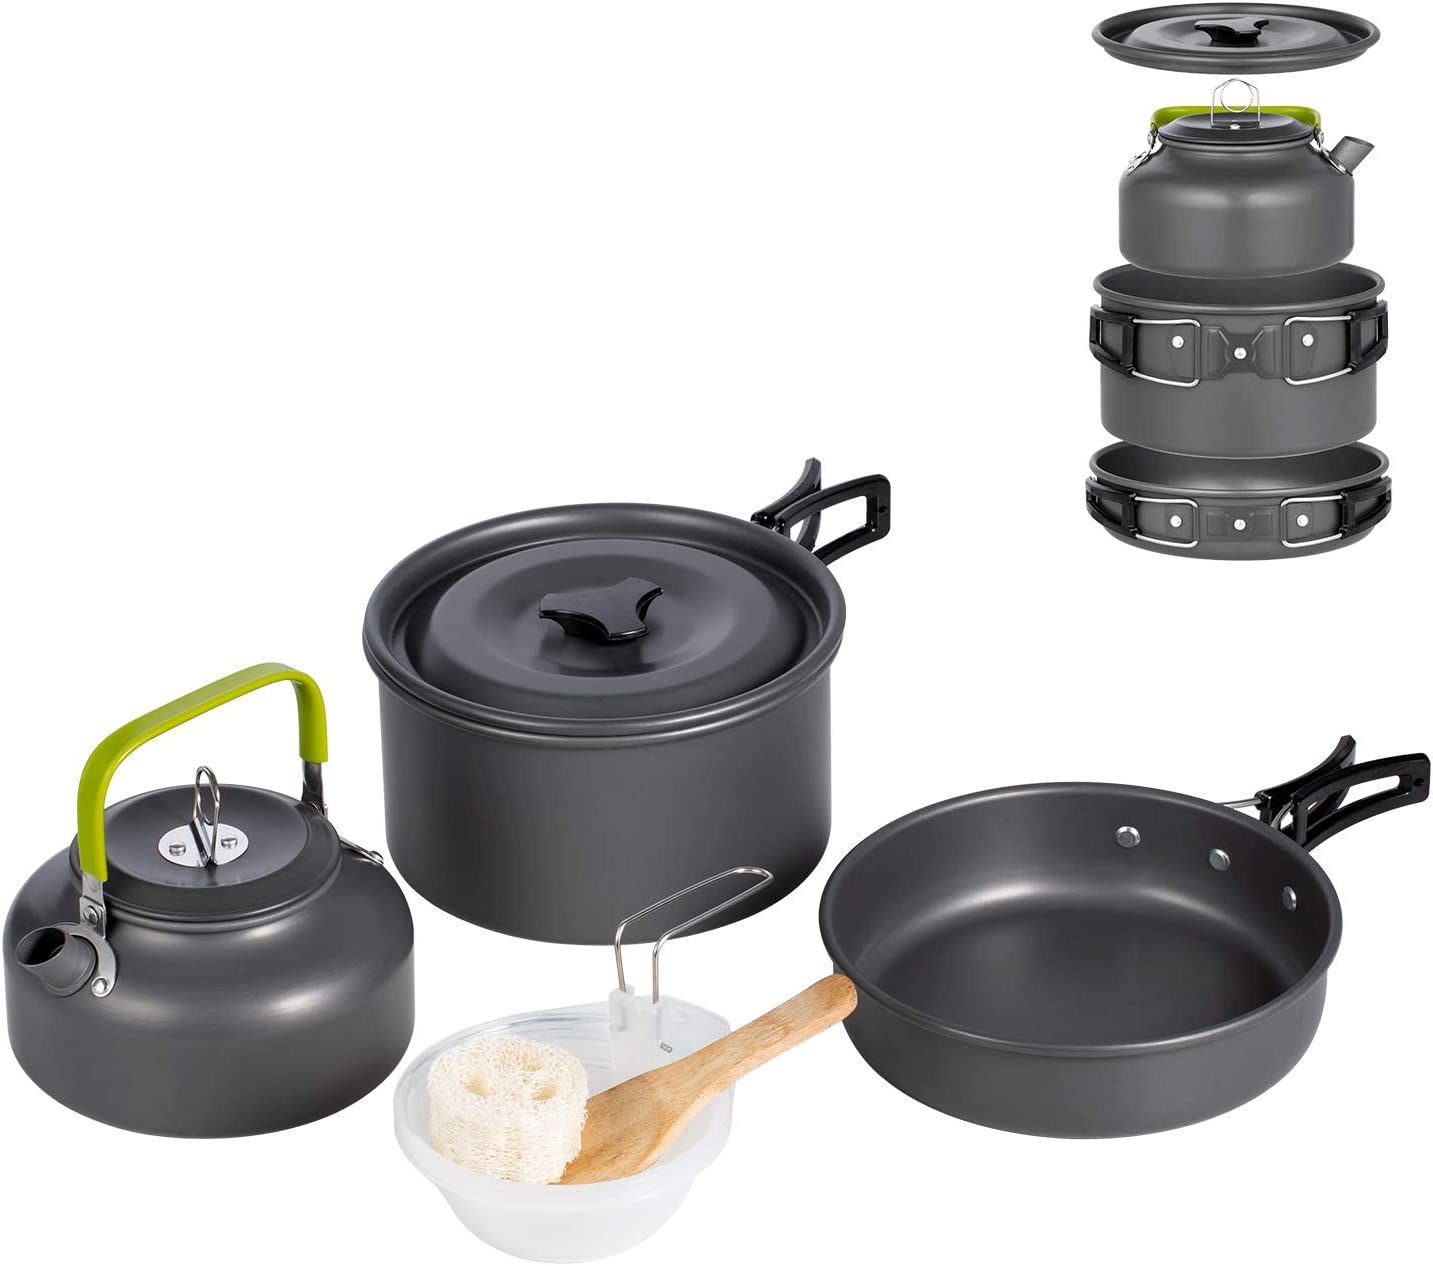 Terra Hiker Camping Cookware Set with Mesh Bag